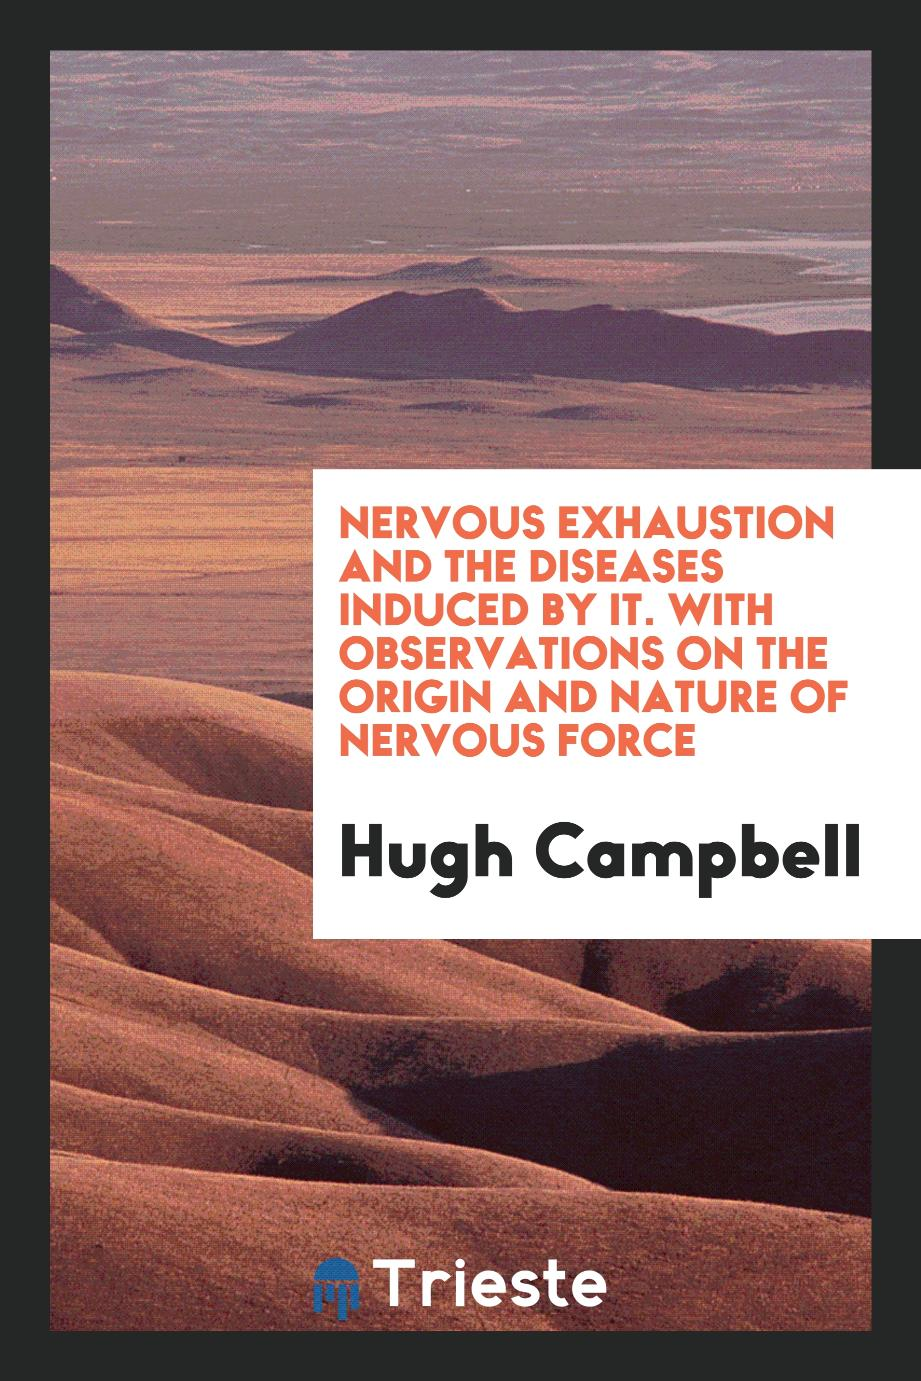 Nervous Exhaustion and the Diseases Induced by It. With Observations on the Origin and Nature of Nervous Force